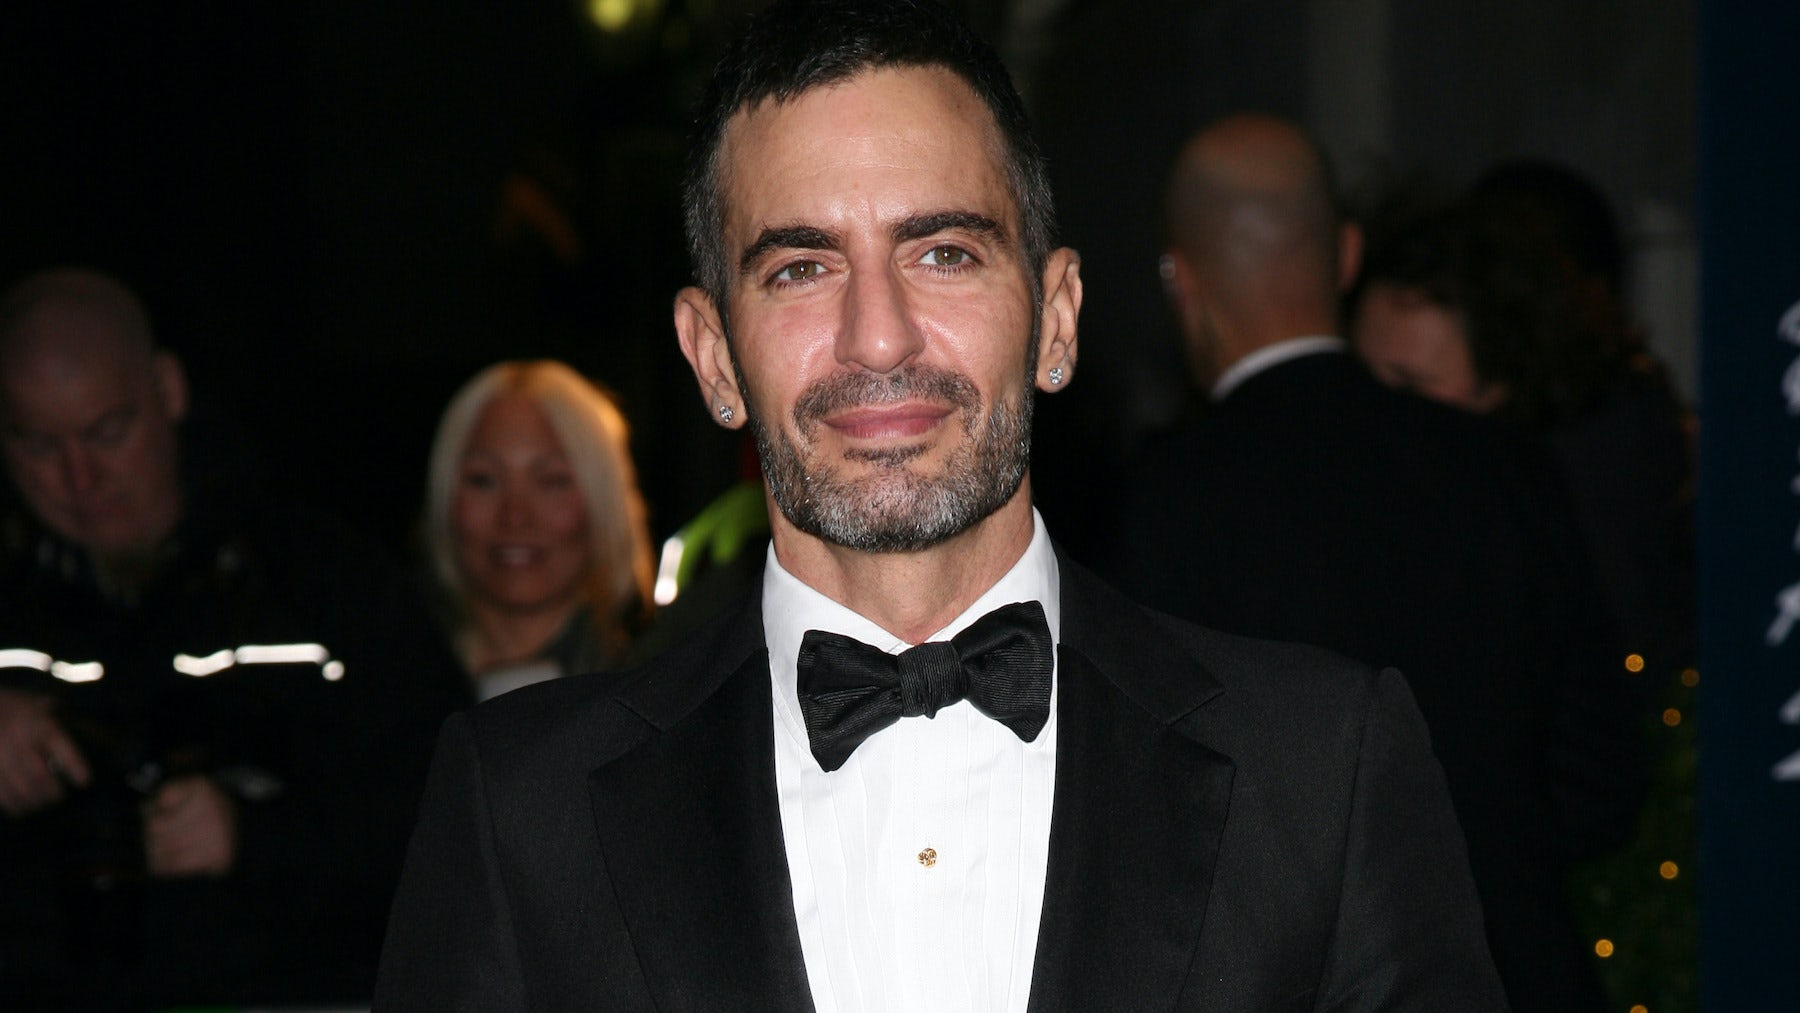 Marc Jacobs | Source: Shutterstock